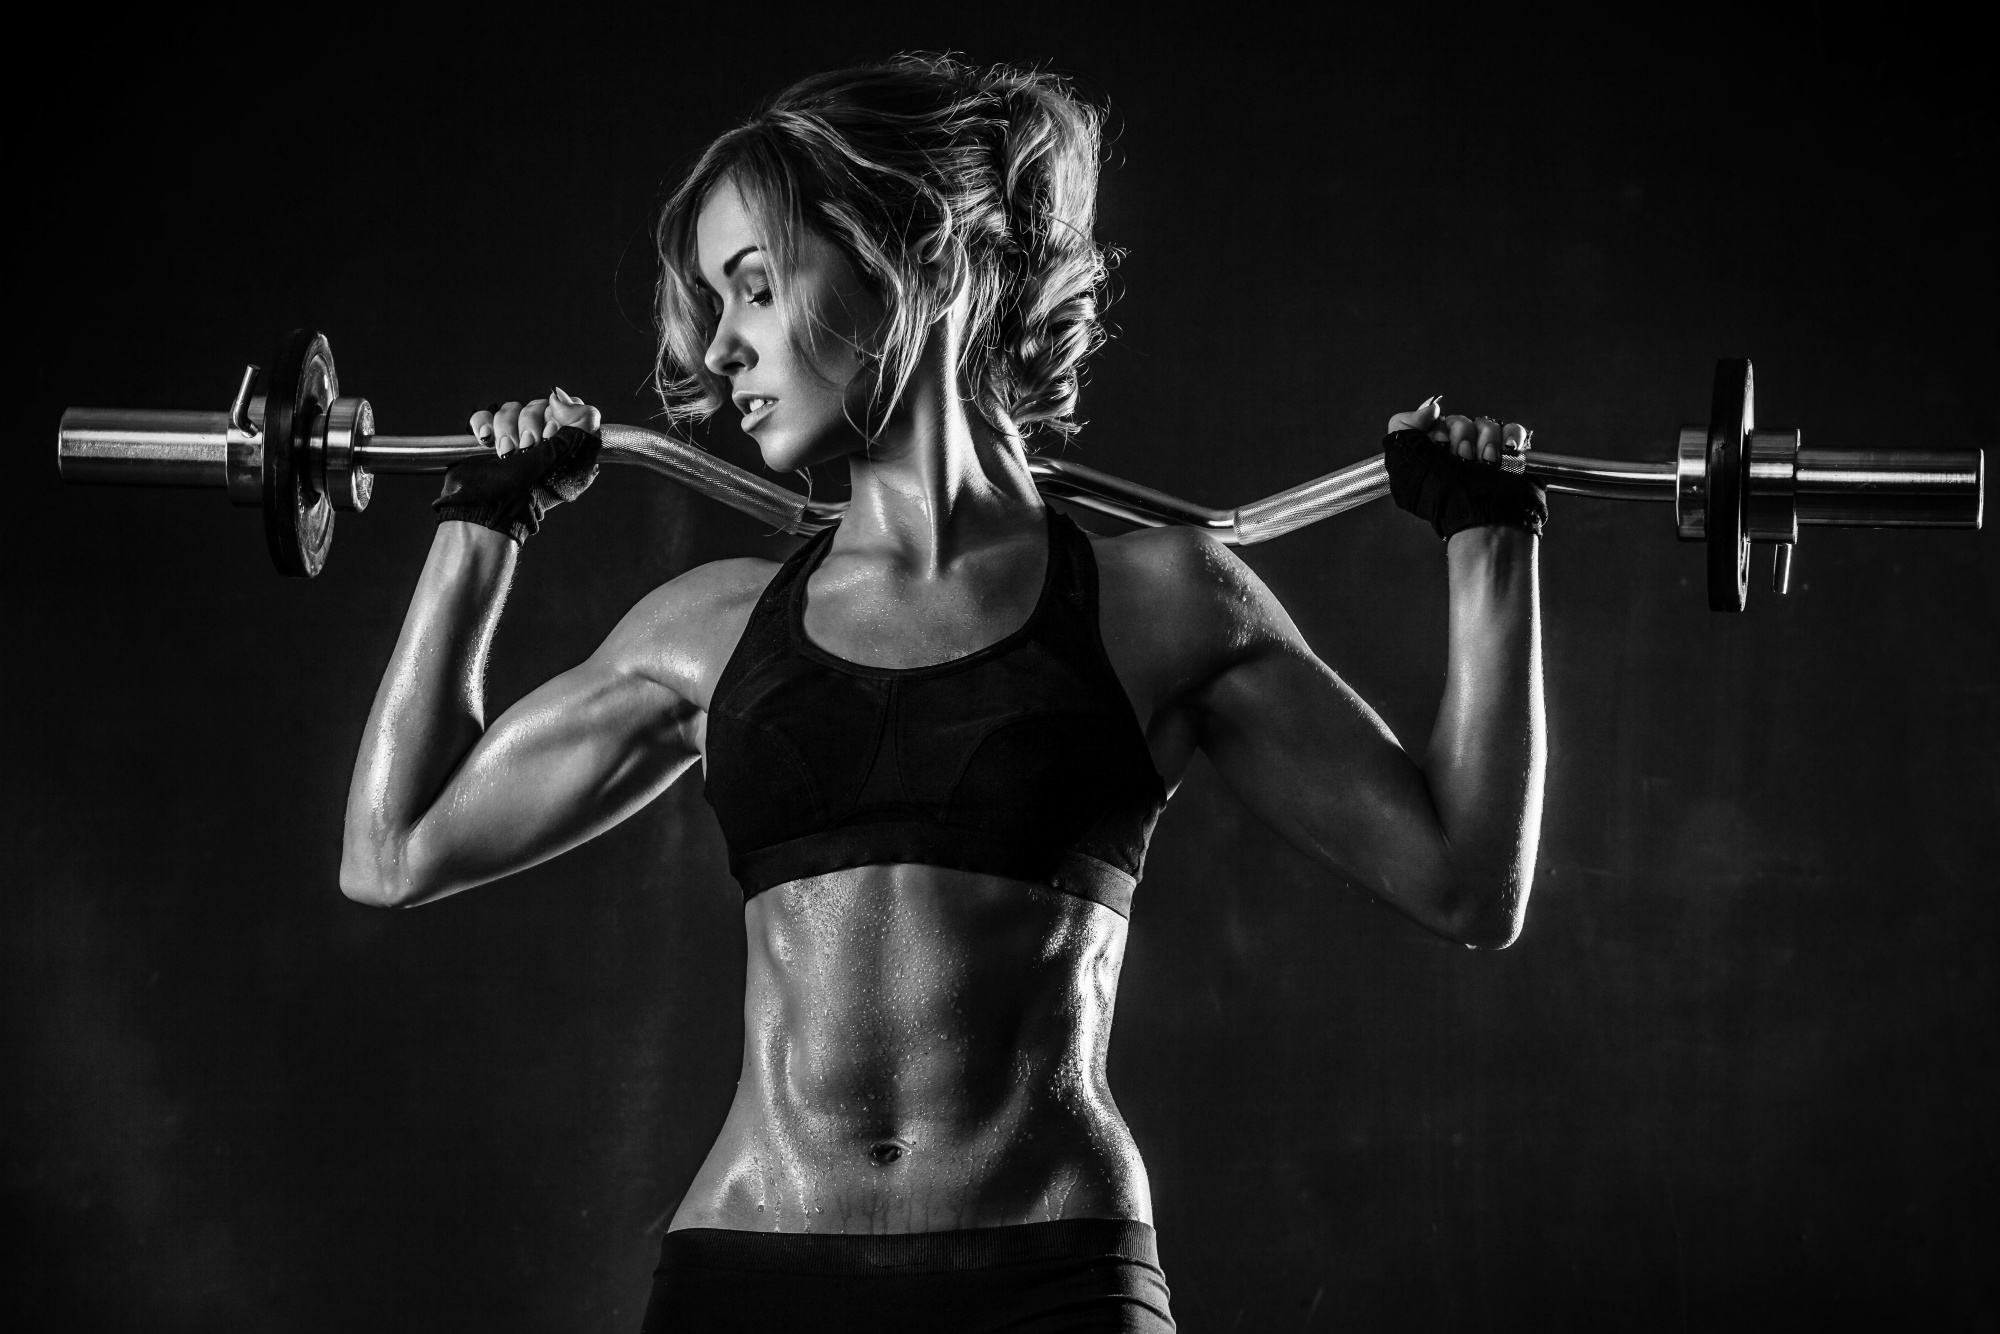 gray_brutal_athletic_woman_pumping_up_muscles_hd-wallpaper-1866122